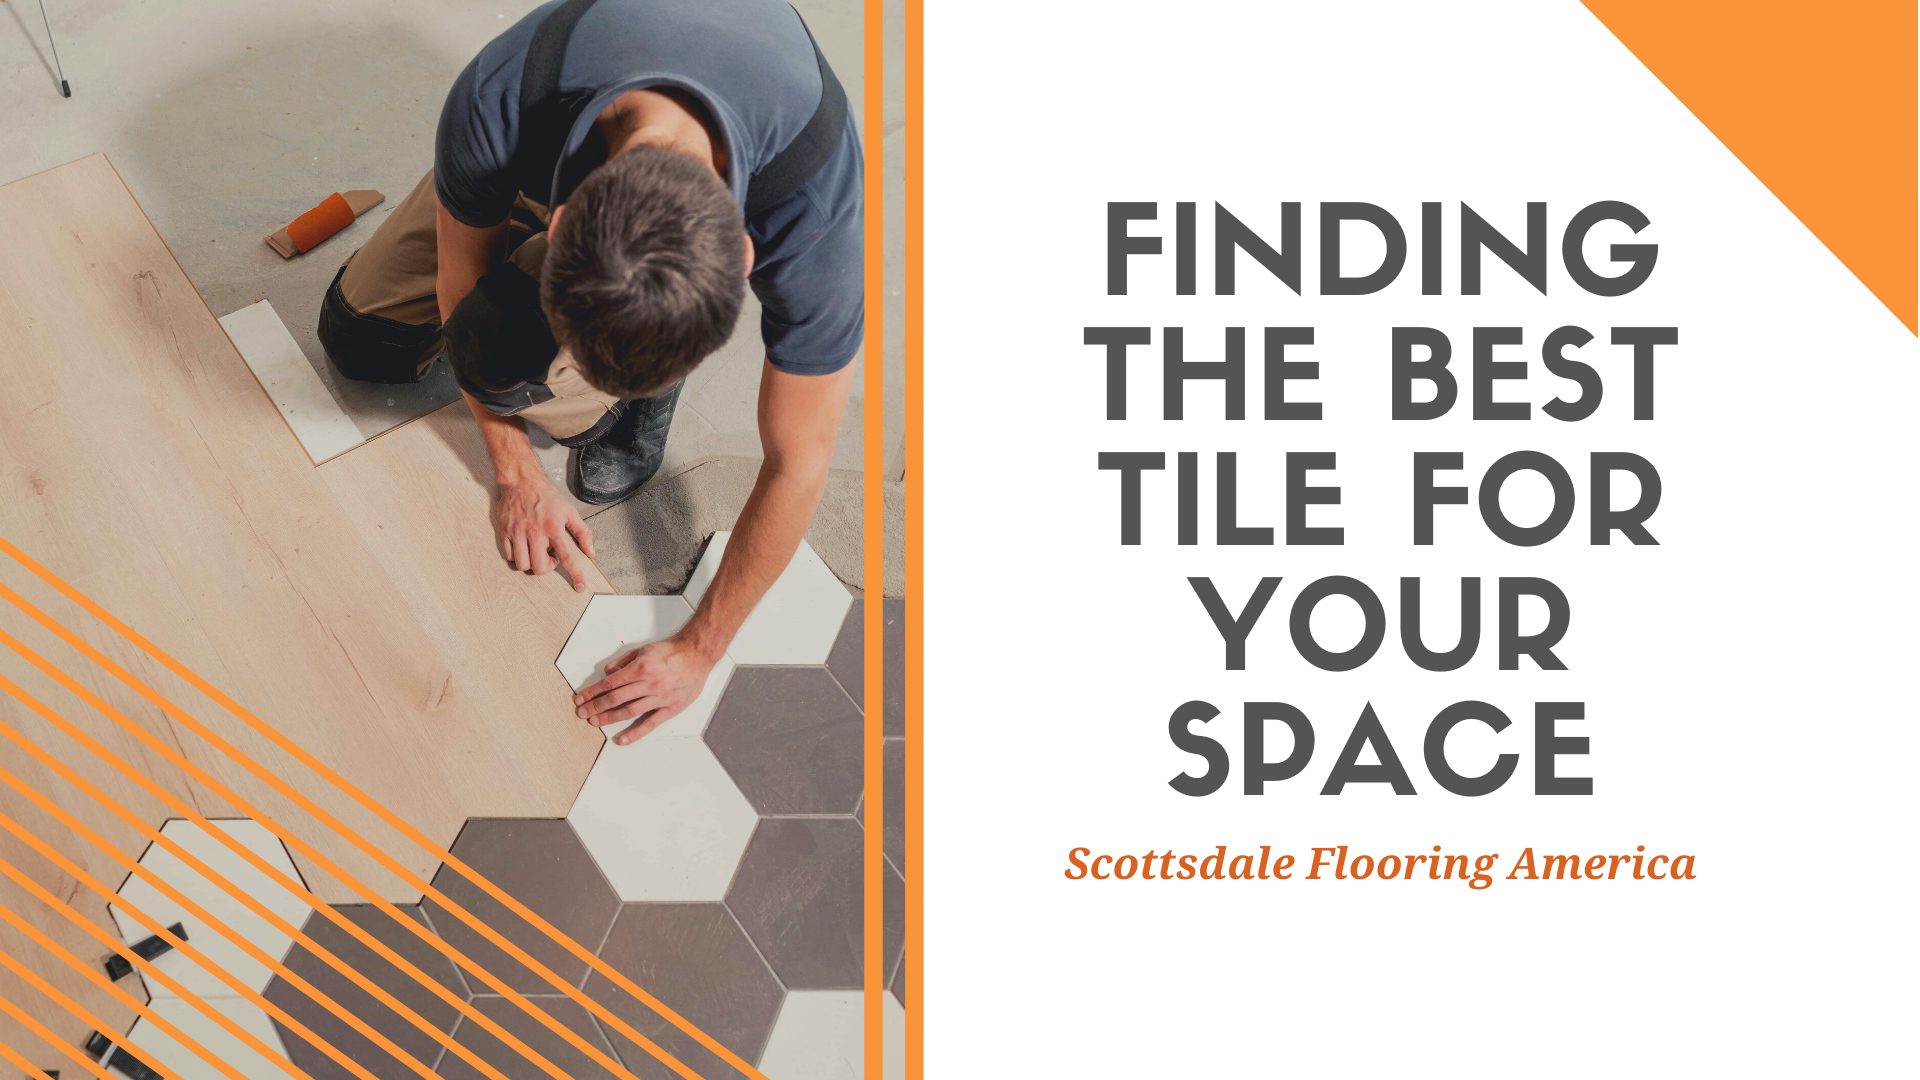 FINDING THE BEST TILE FOR YOUR SPACE